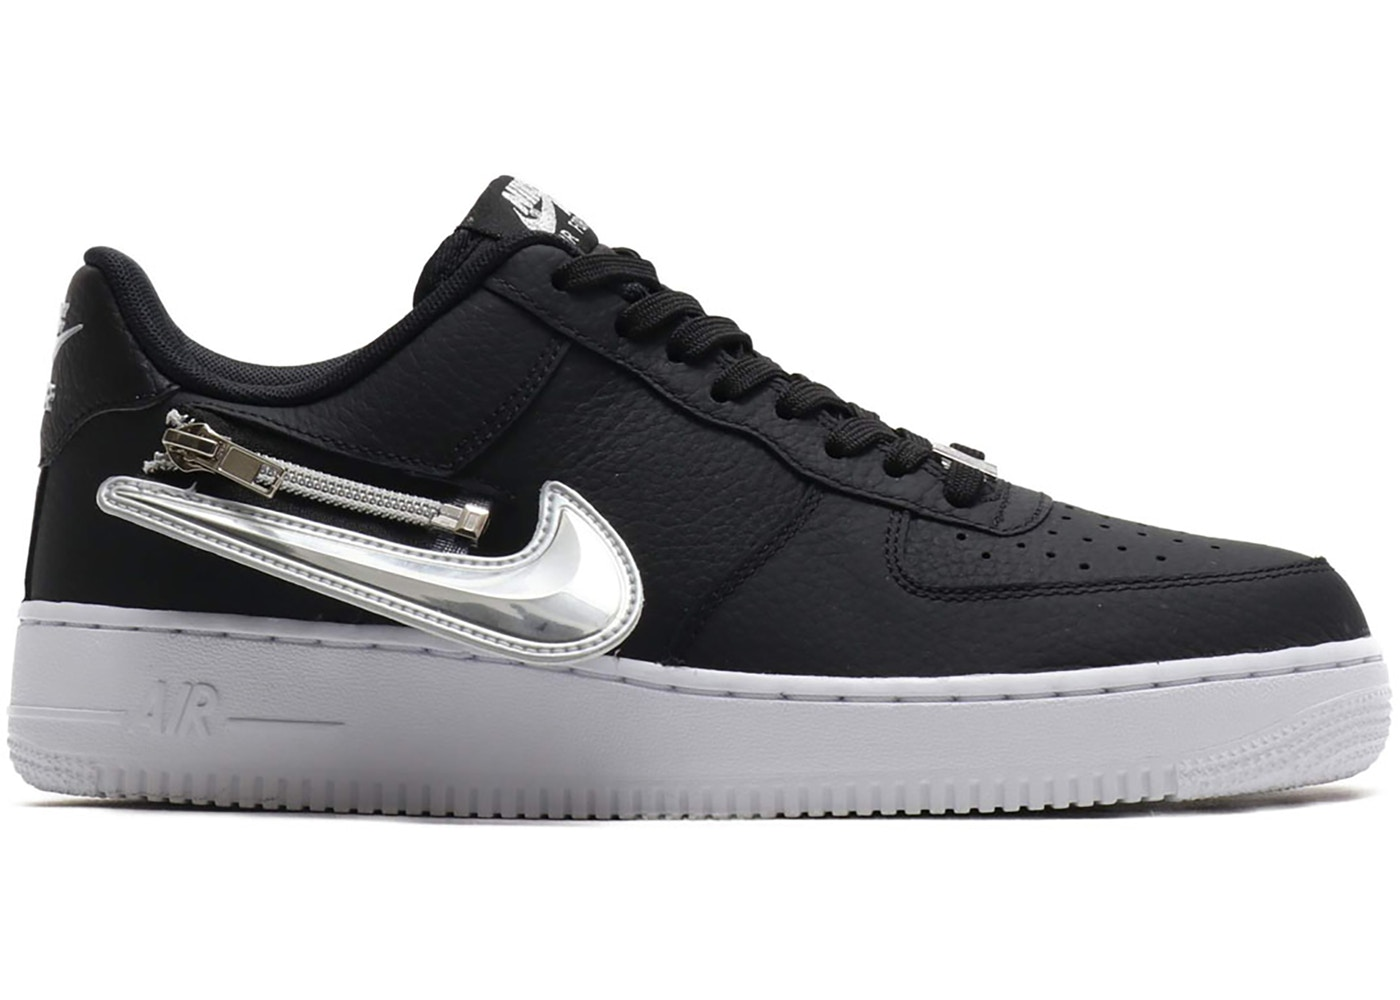 Nike Air Force 1 Low Zip Swoosh Black Cw6558 001